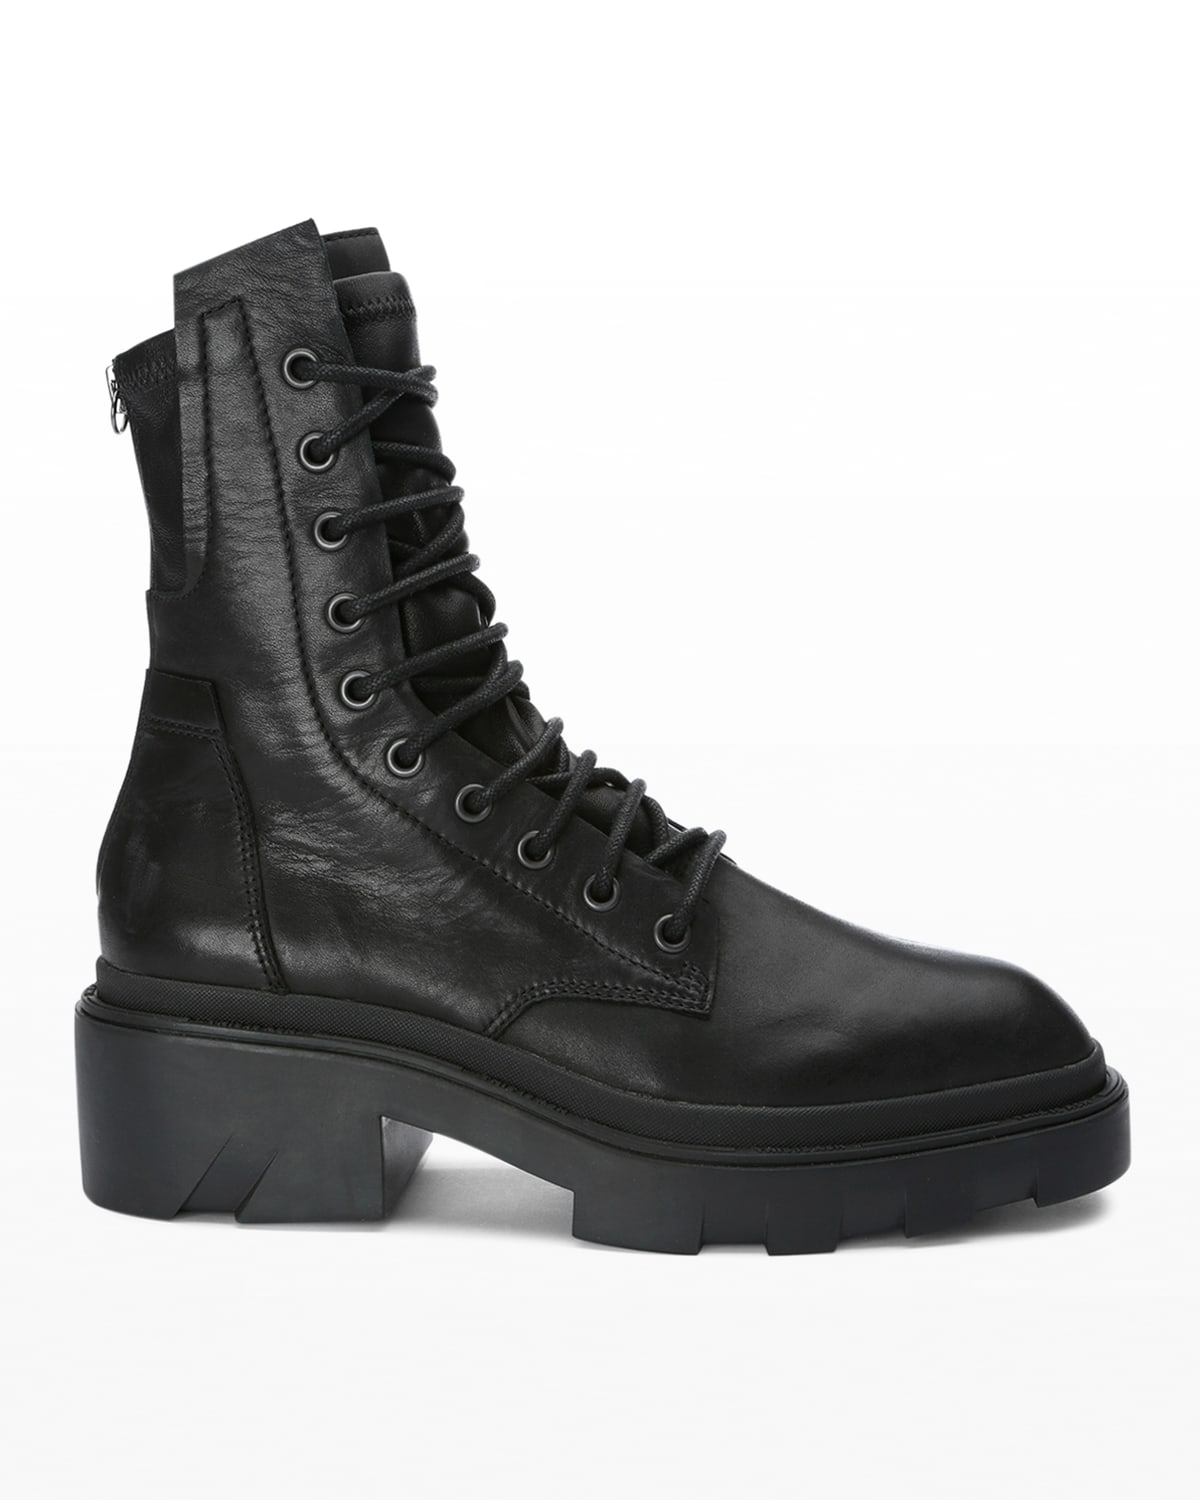 Madness Mid Leather Combat Booties